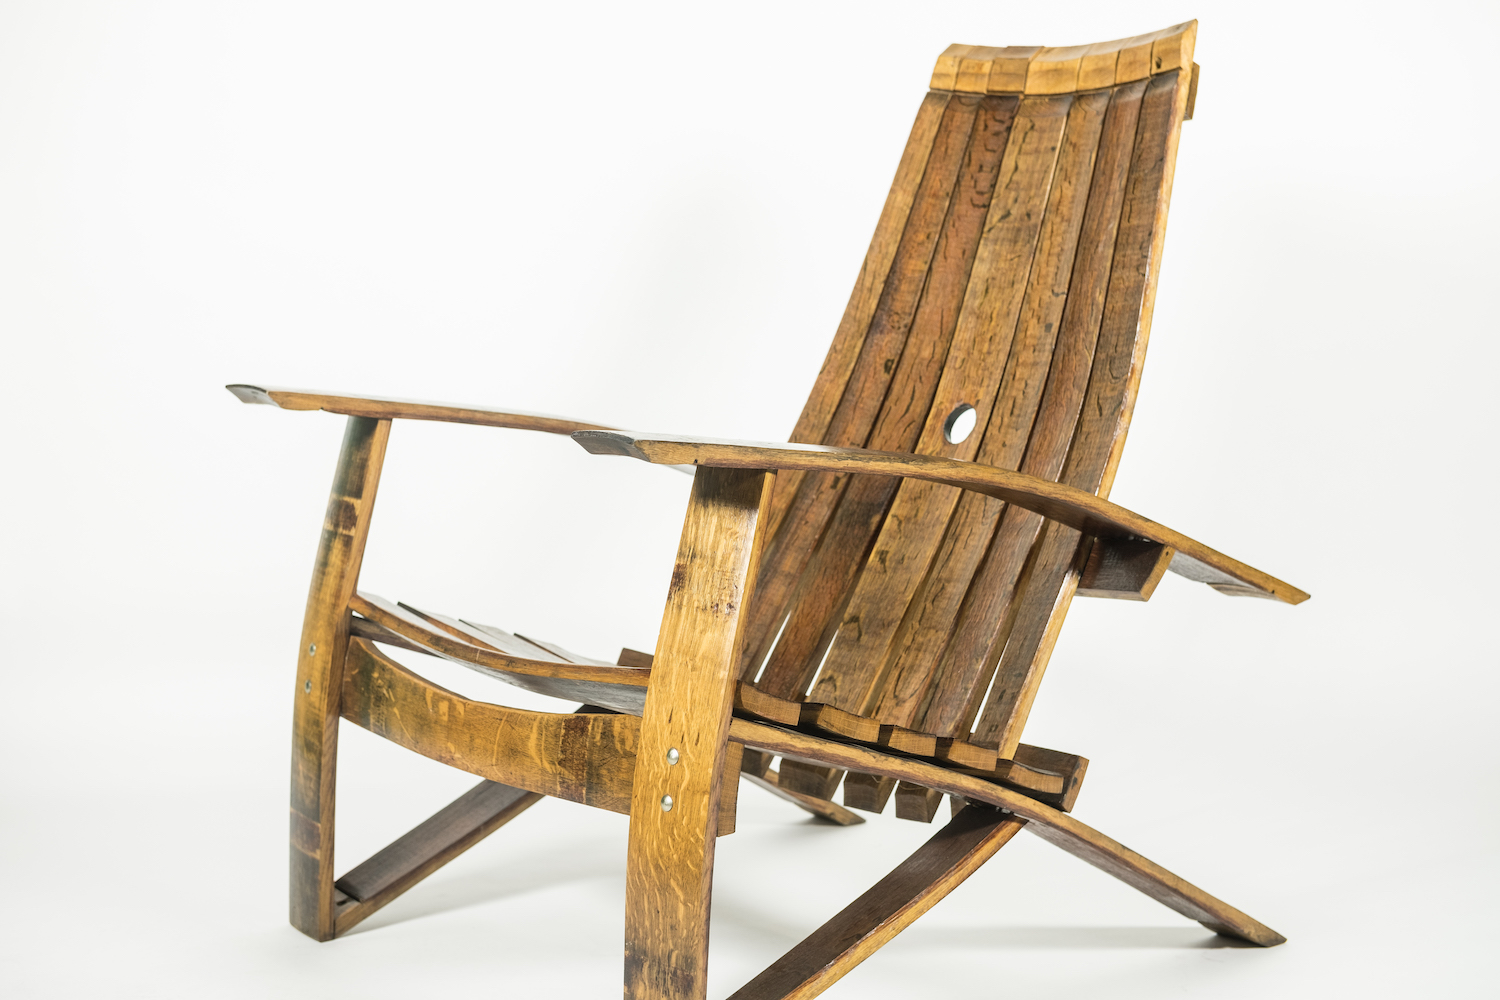 barrel stave adirondack chair plans wheel chairs for sale shea oak works wine